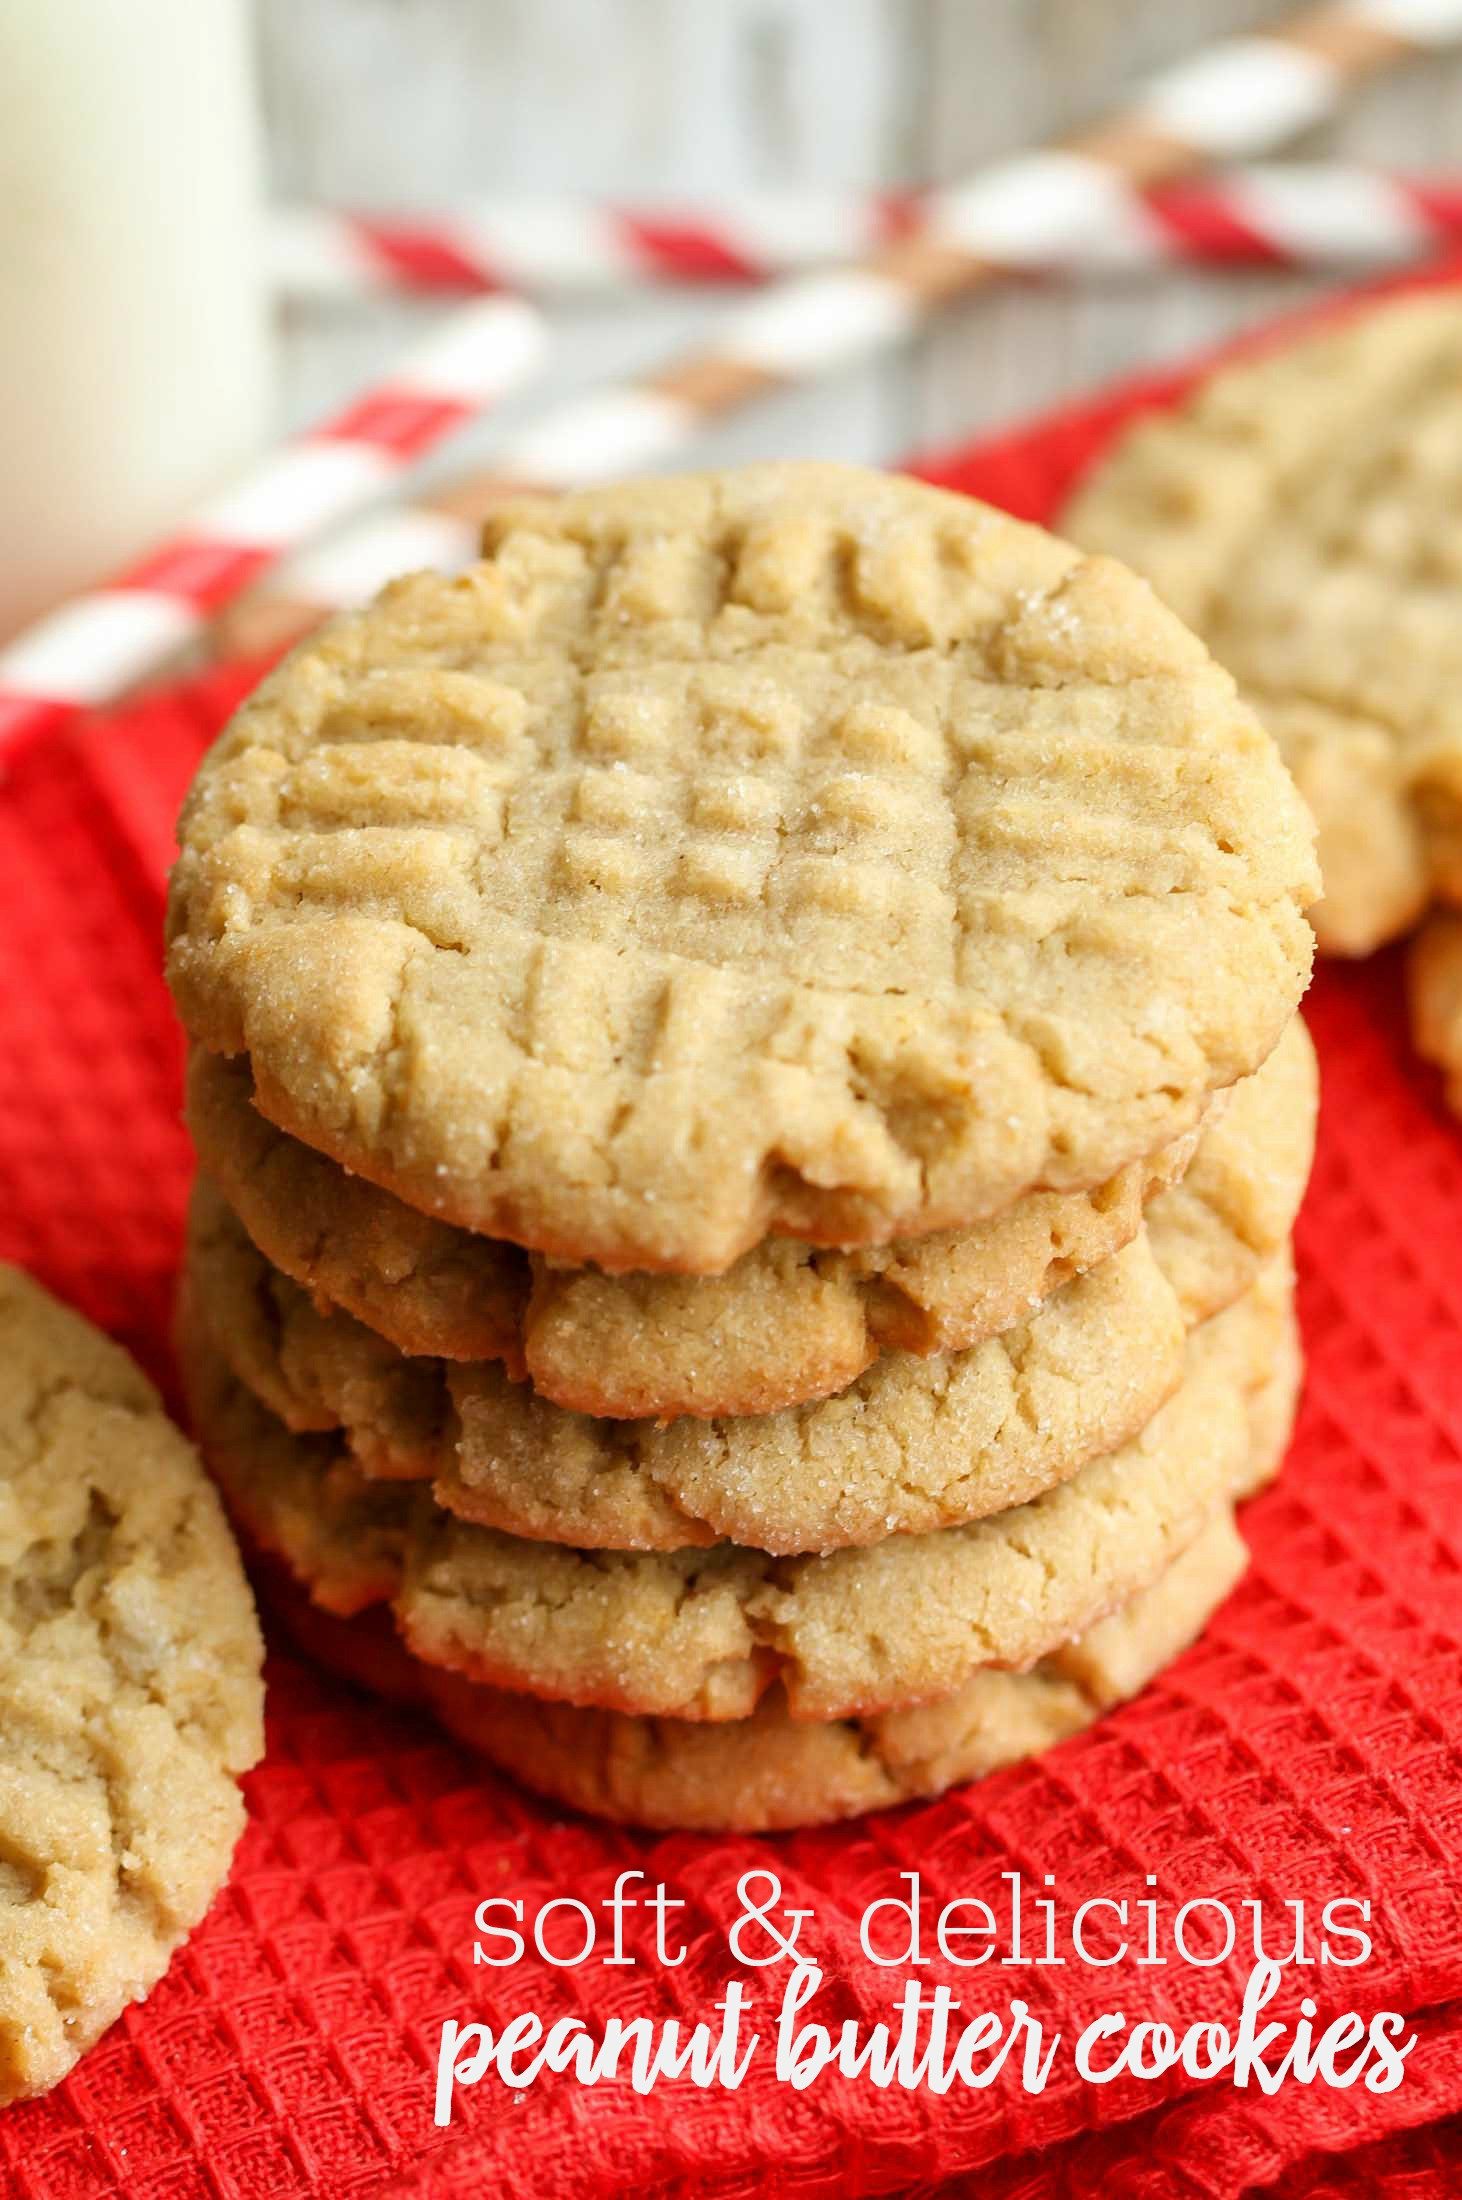 Peanut Butter Cookies Recipe Easy  EASY & SOFT Peanut Butter Cookies